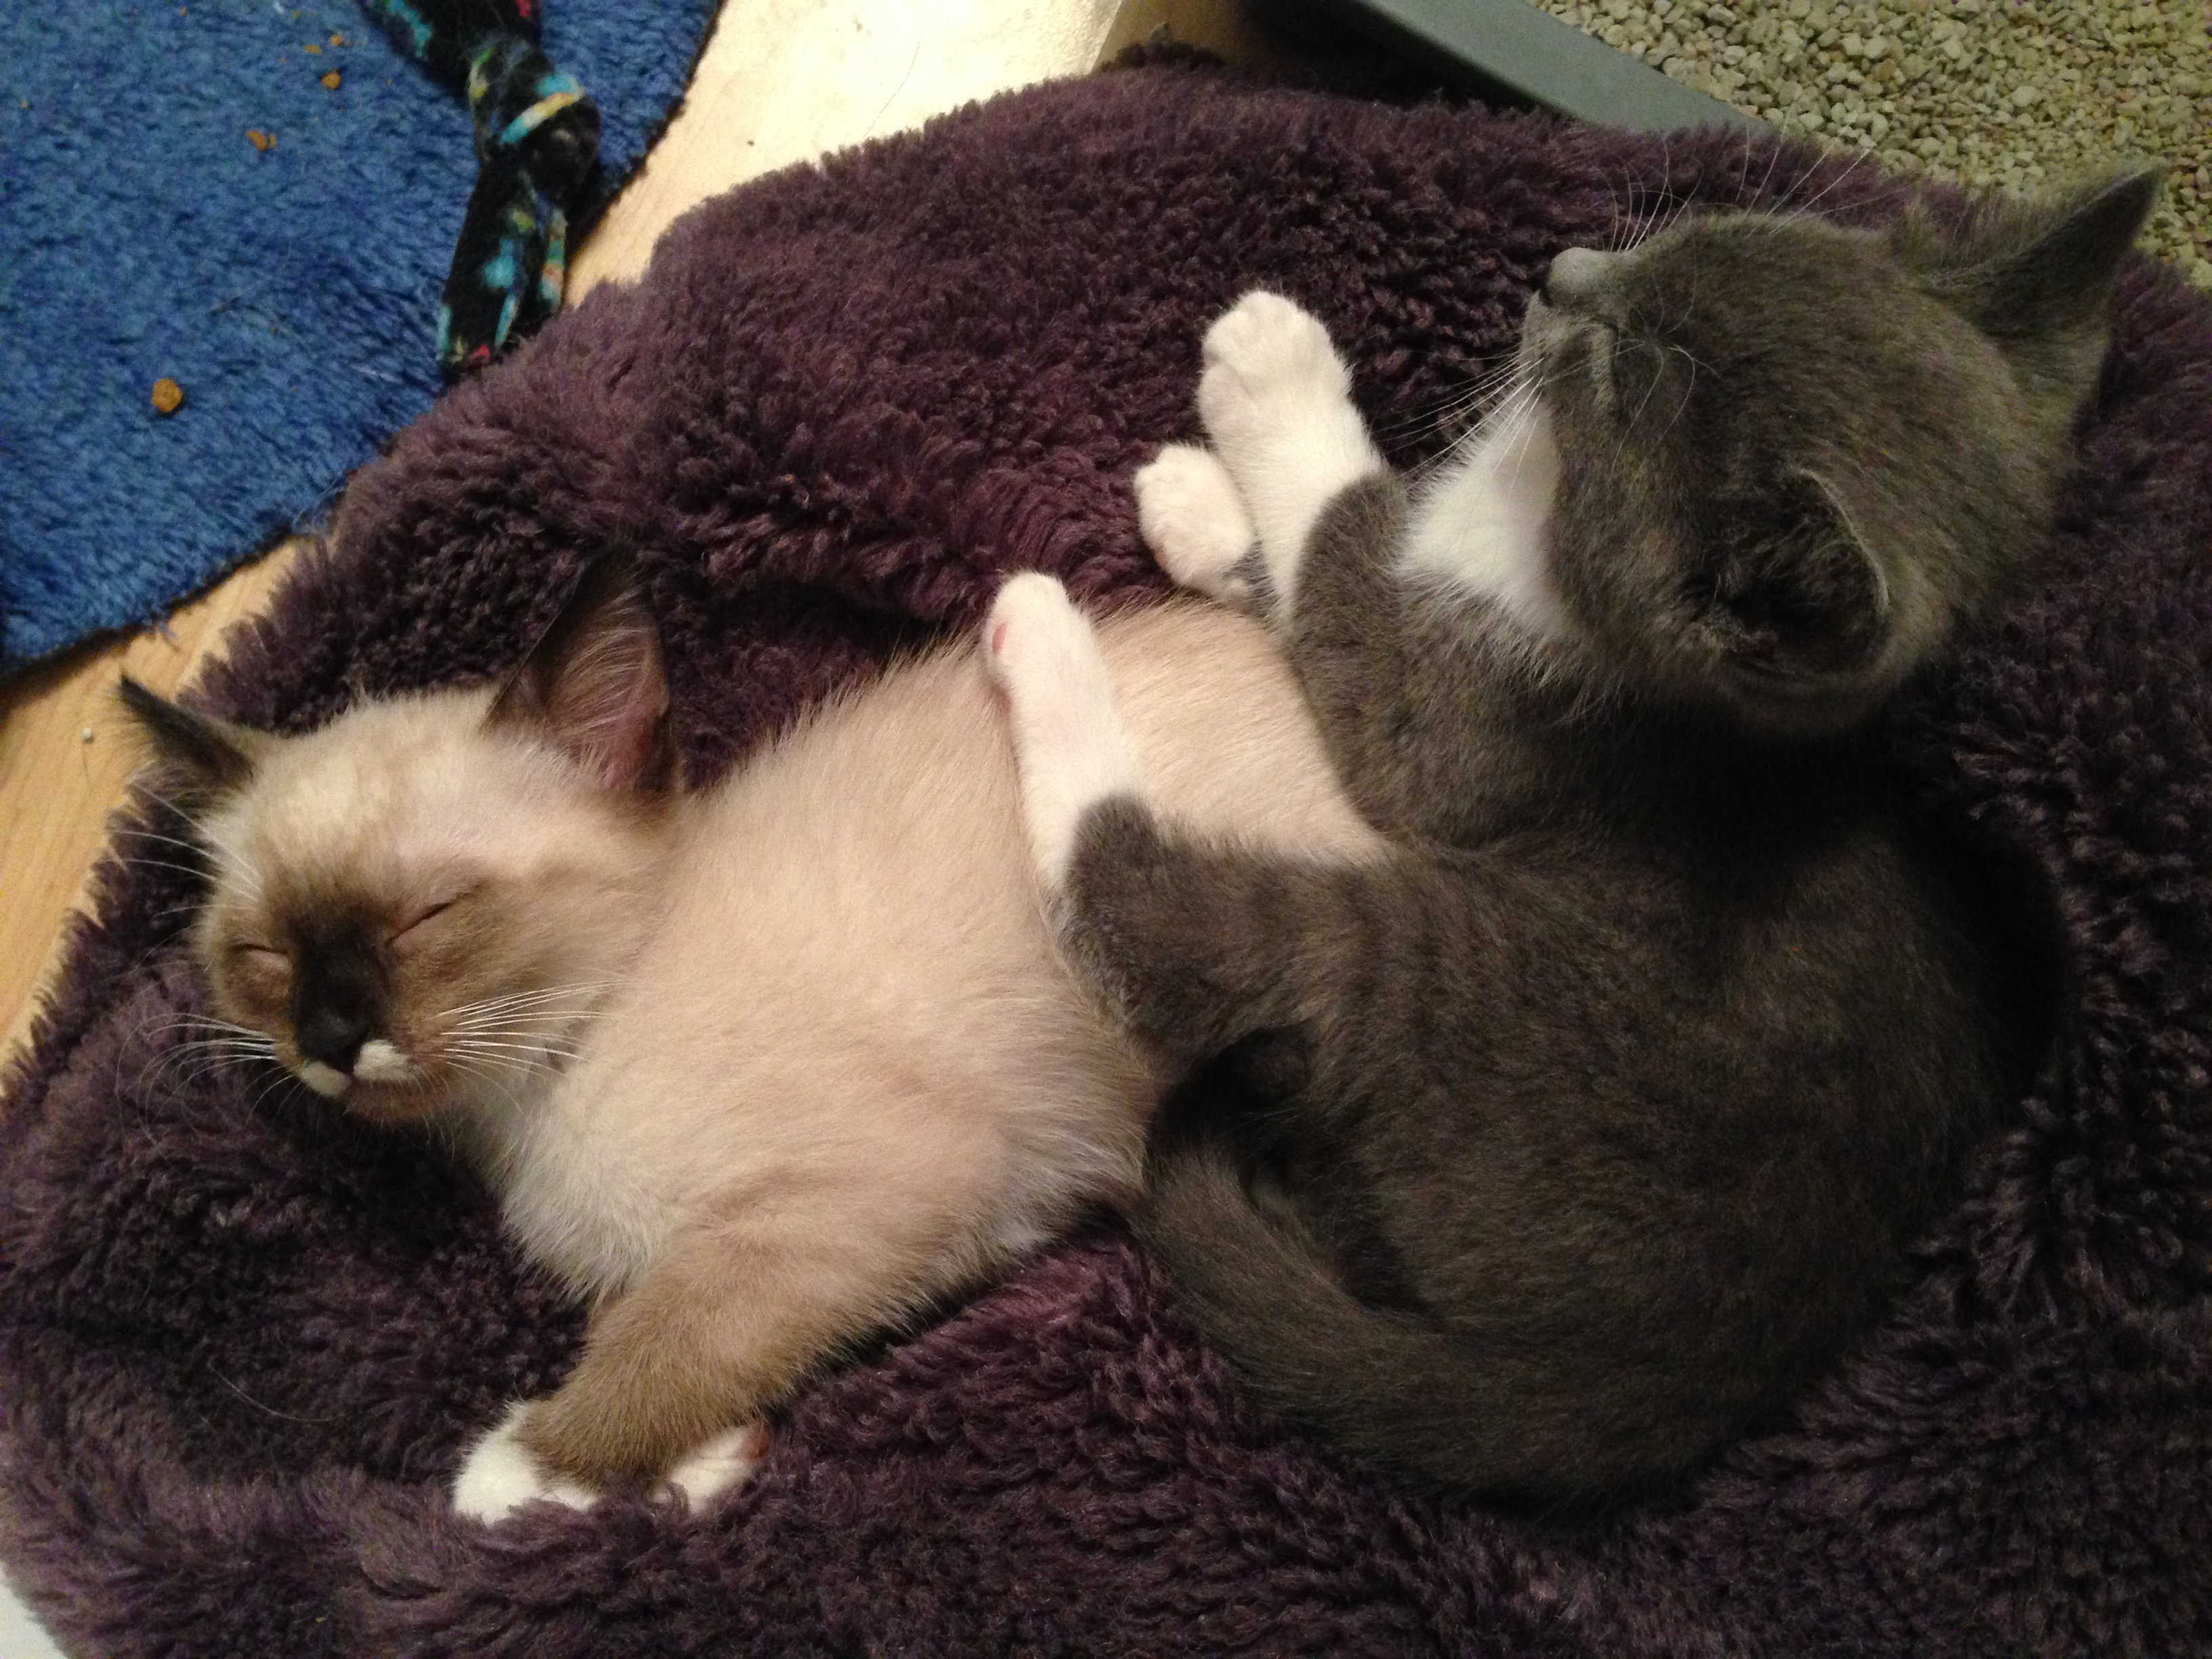 Willow and Soren as kittens